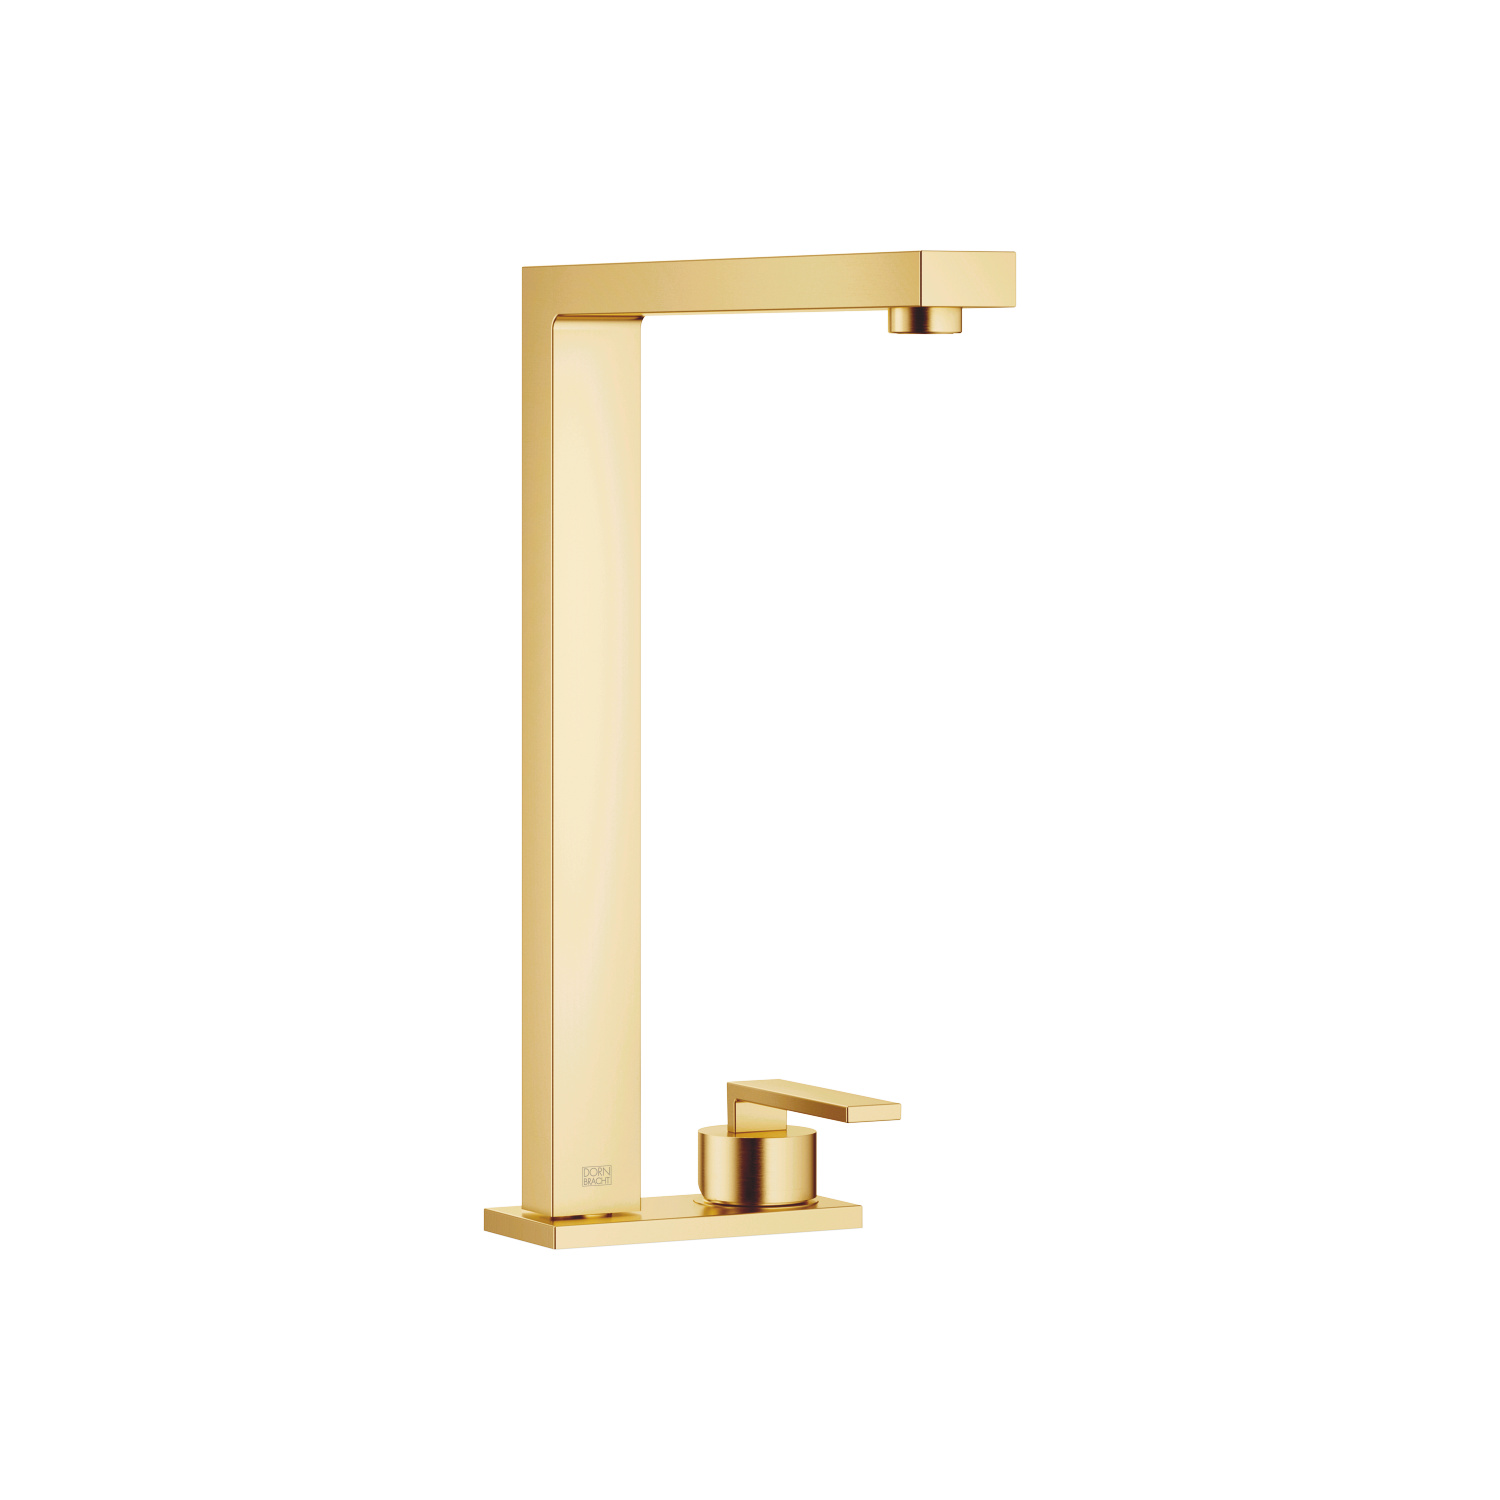 Two-hole mixer with cover plate - Brushed Durabrass